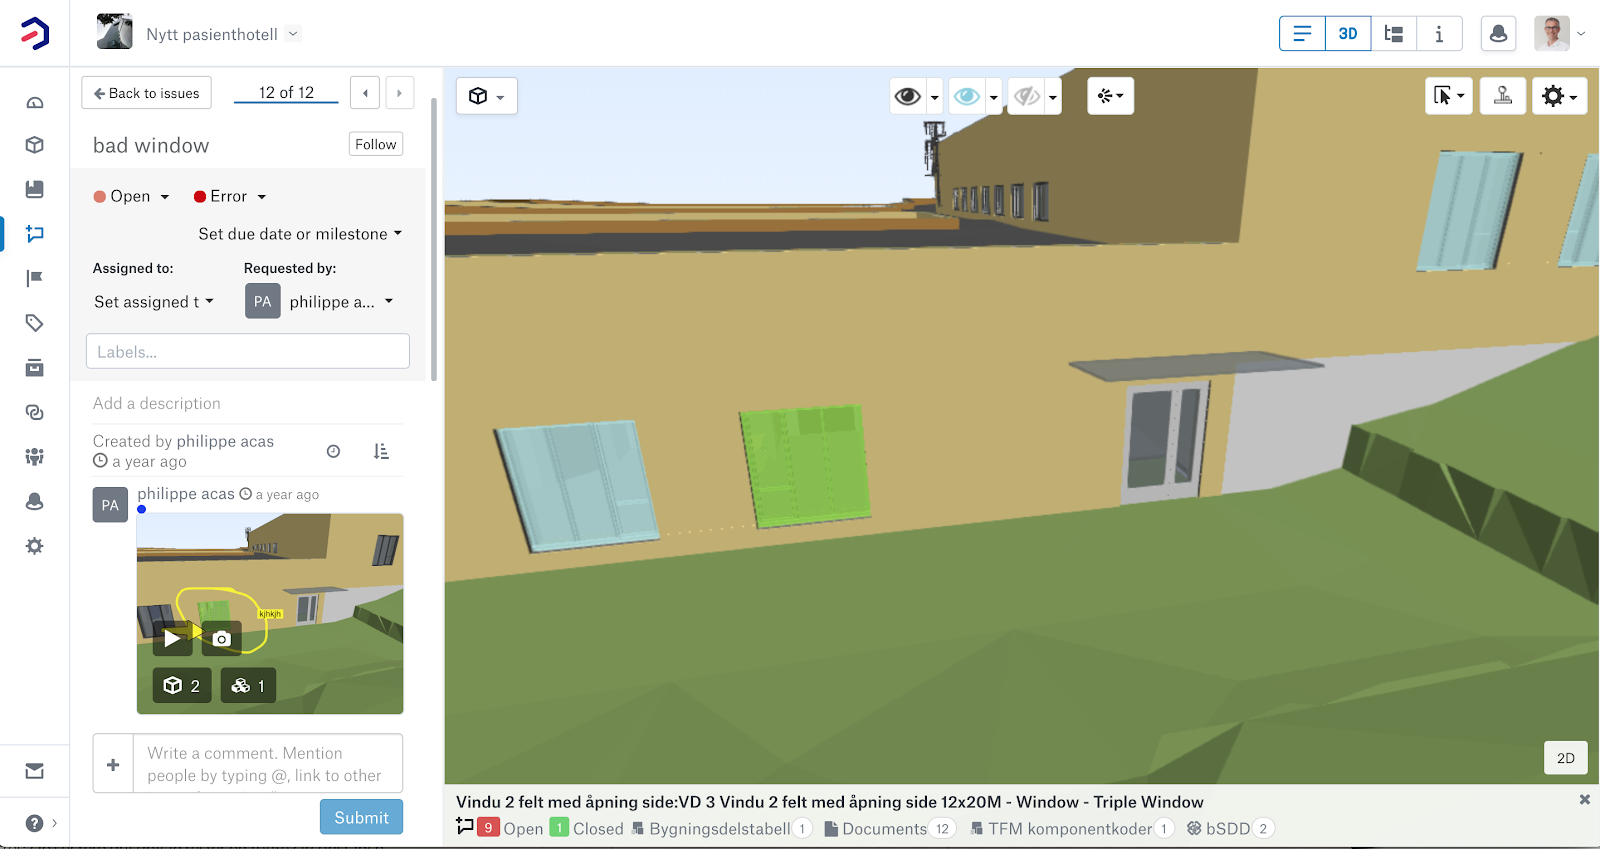 Issue management workflow in Bimsync: integrated discussion thread and contextual 3D view